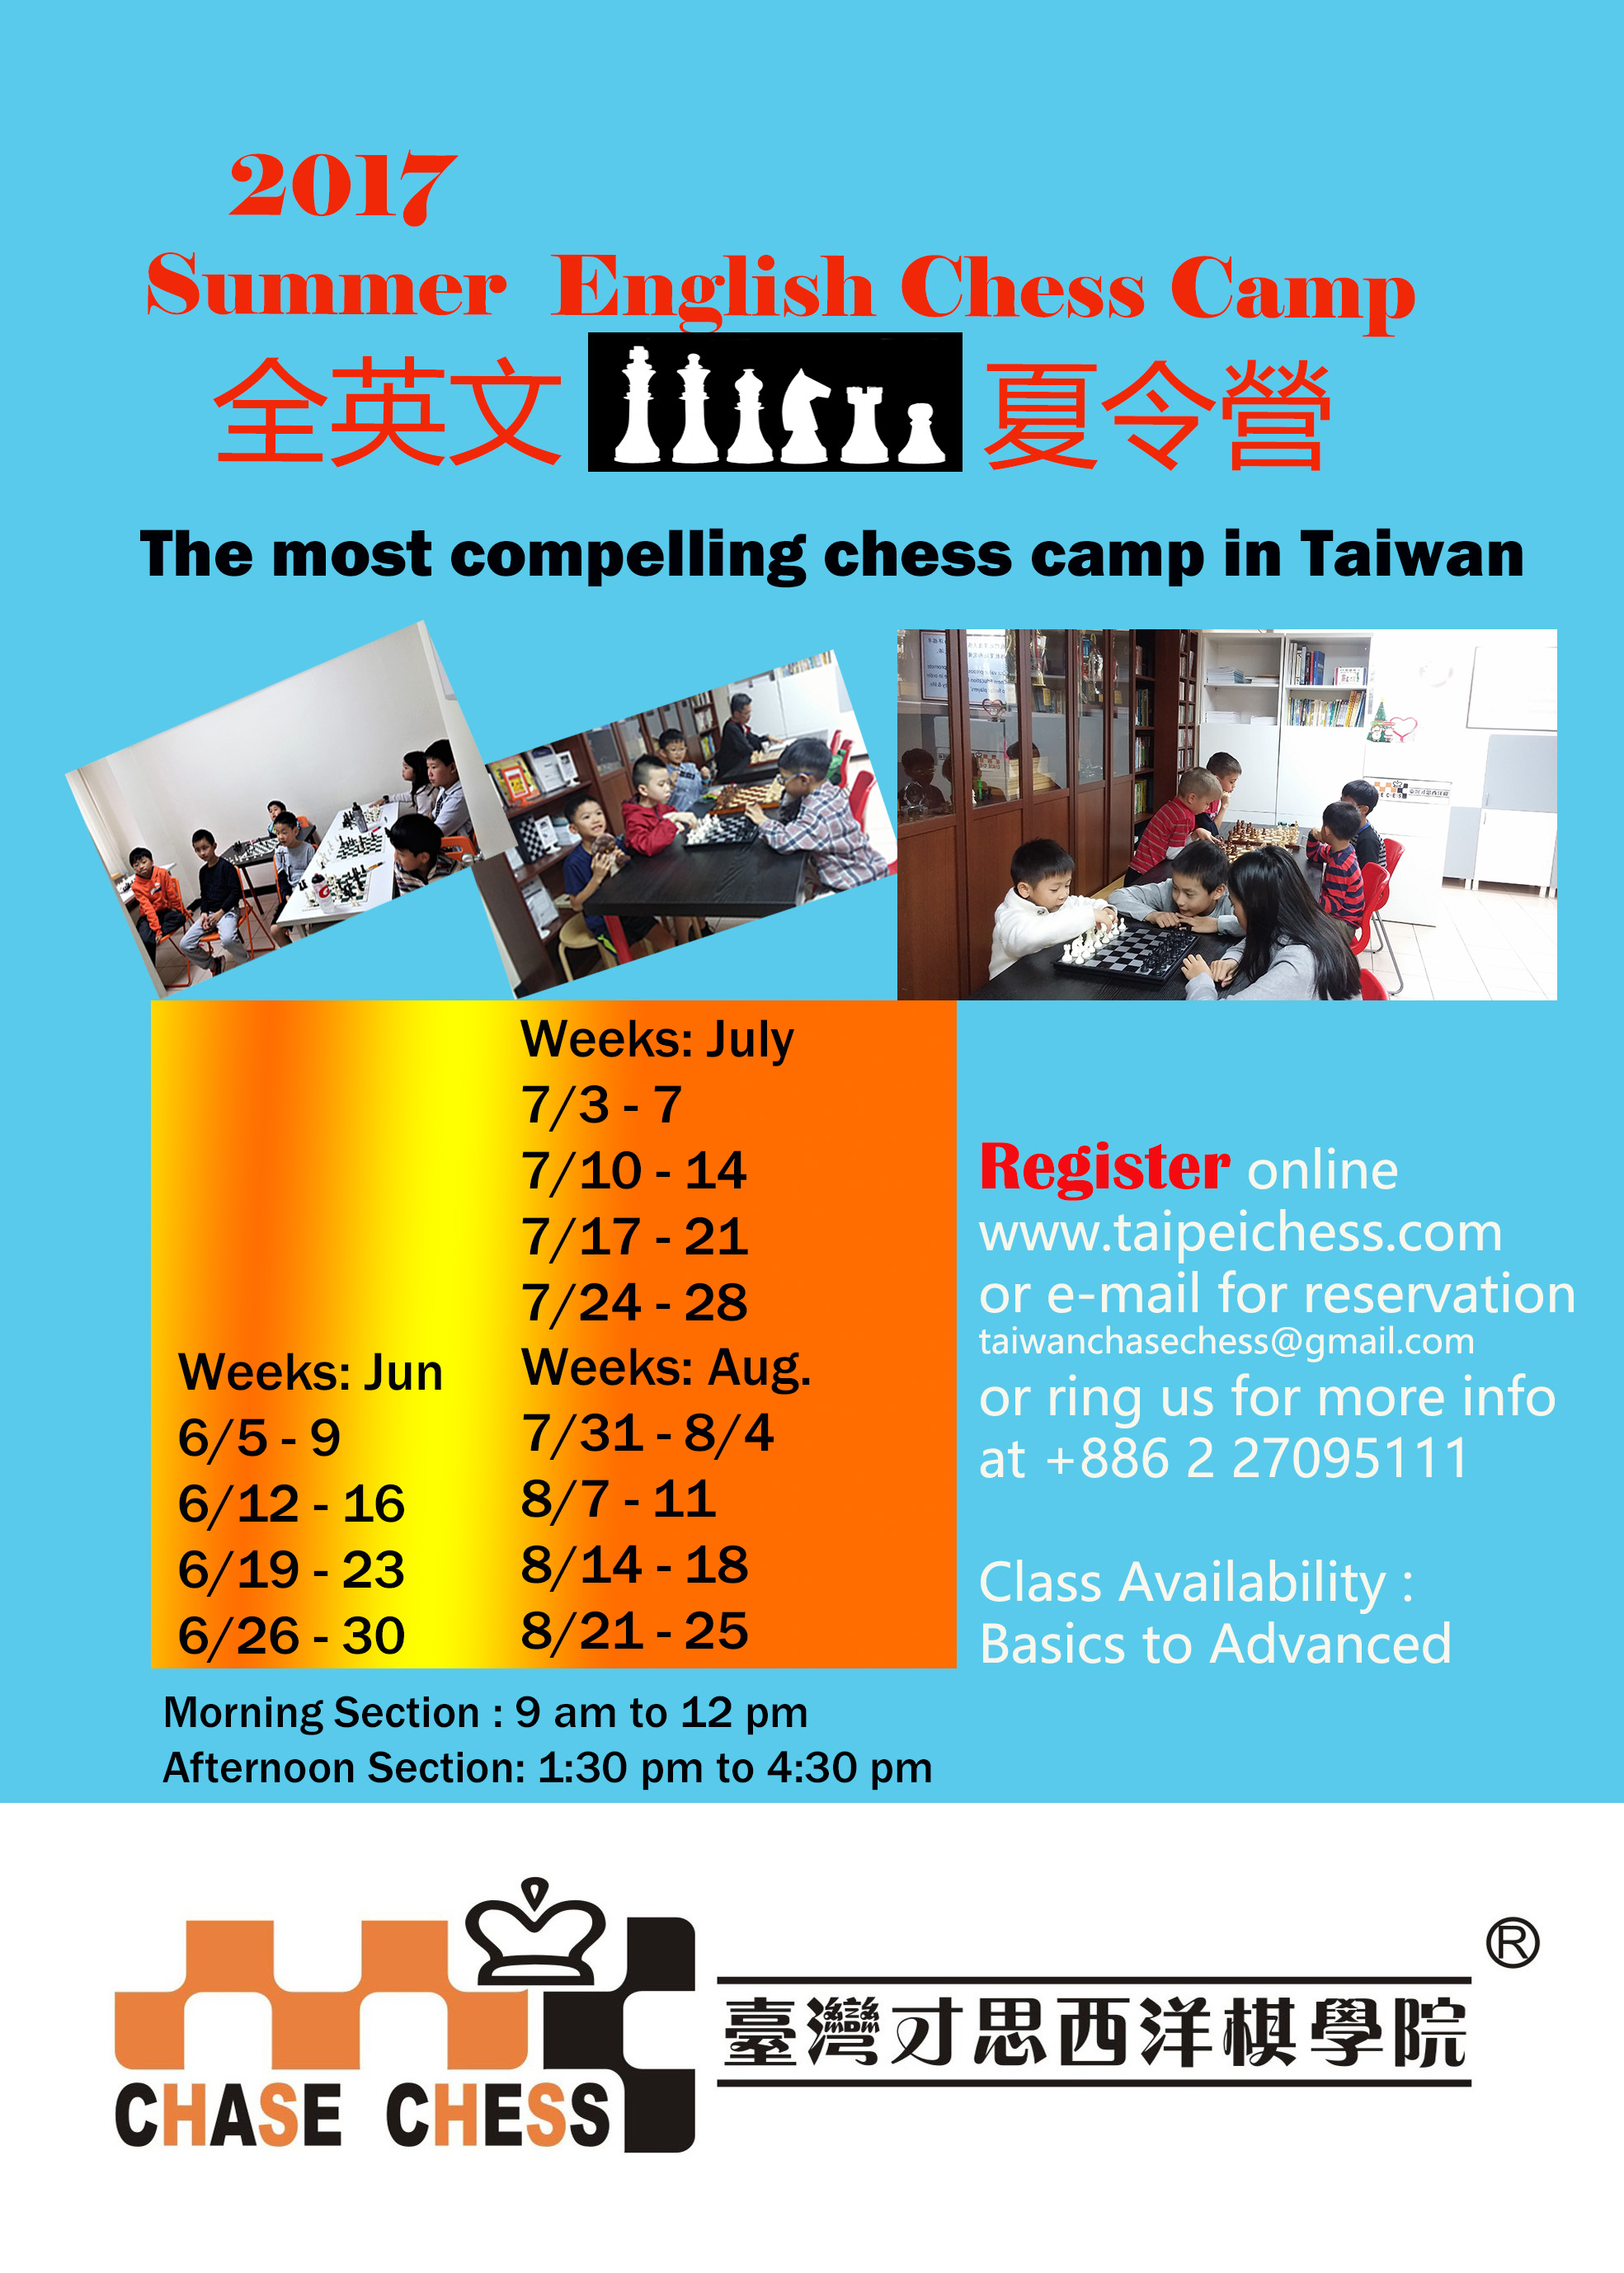 2017 Summer Chess Camp in English 才思西洋棋全